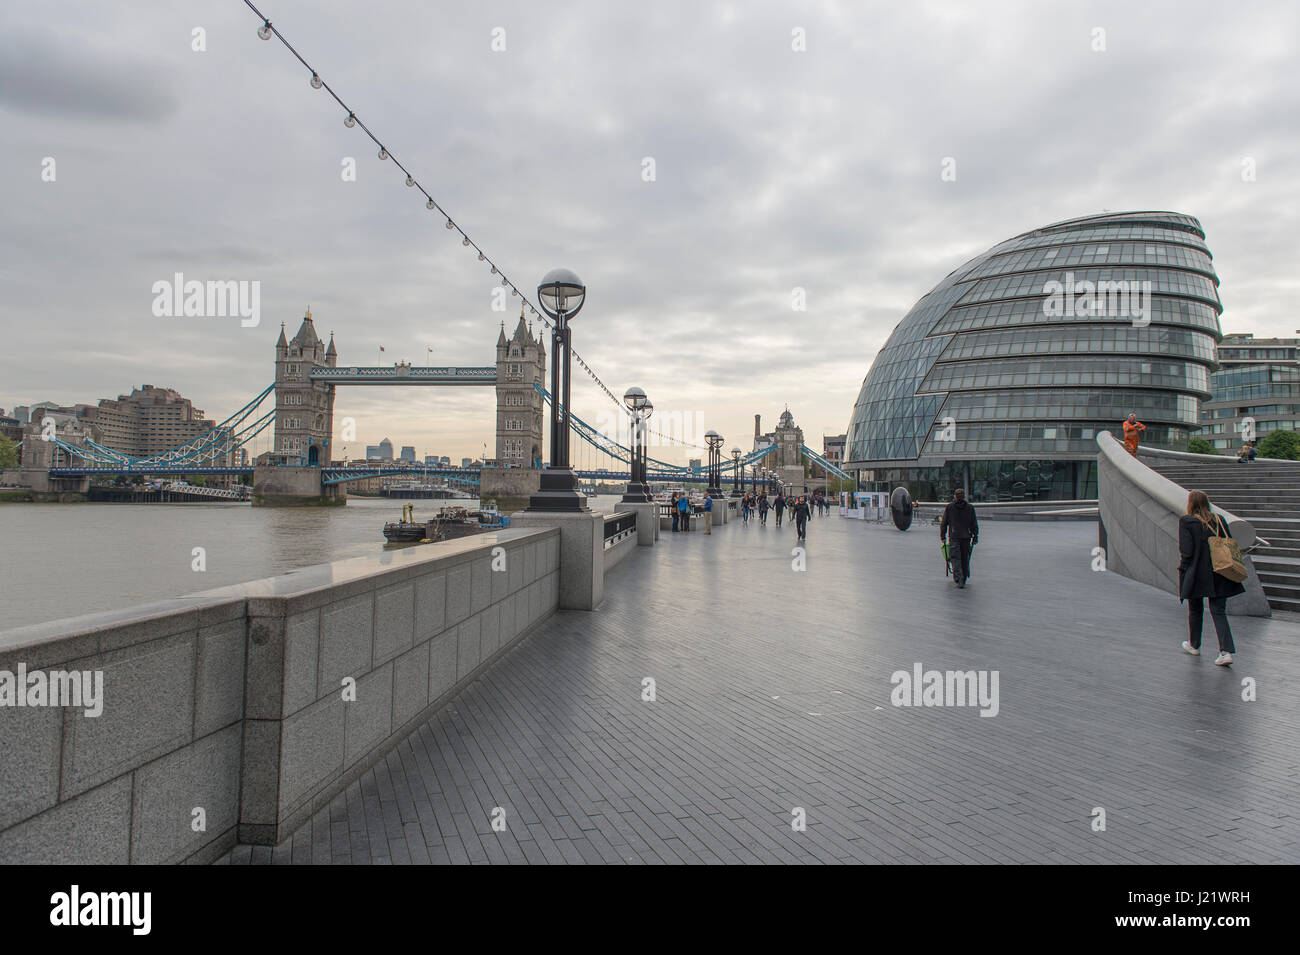 London Uk 24th April 2017 Cold And Grey Weather Over London Following A Day Of Sun For The London Marathon Credit Malcolm Park Alamy Live News